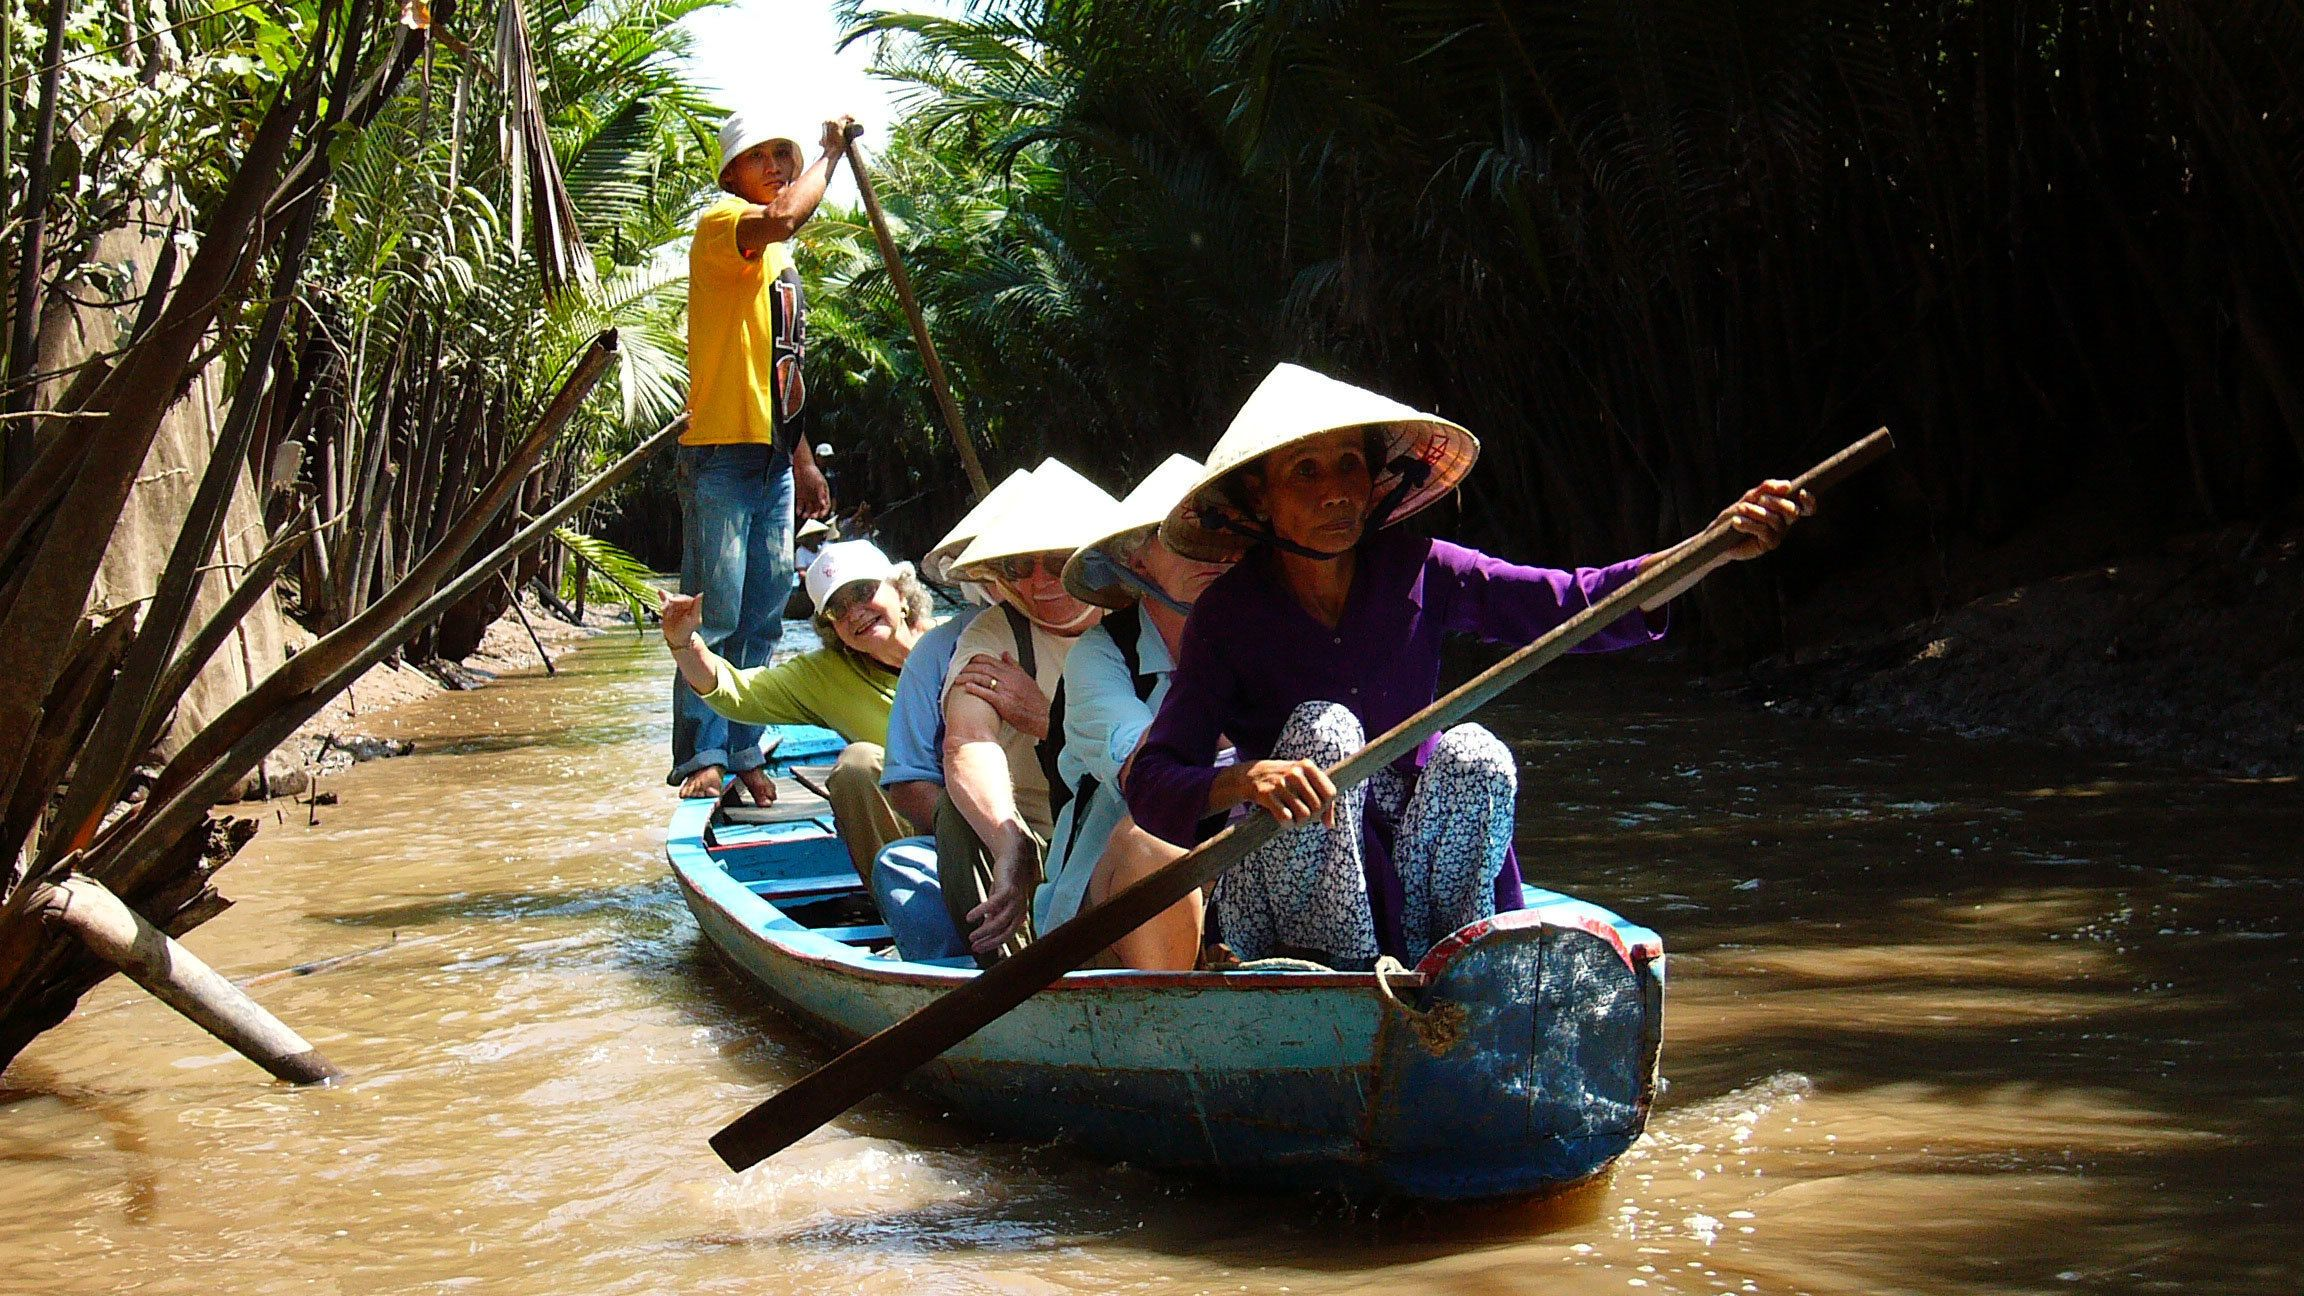 Tourists on a scenic river cruise along the beautiful Mekong River in Vietnam